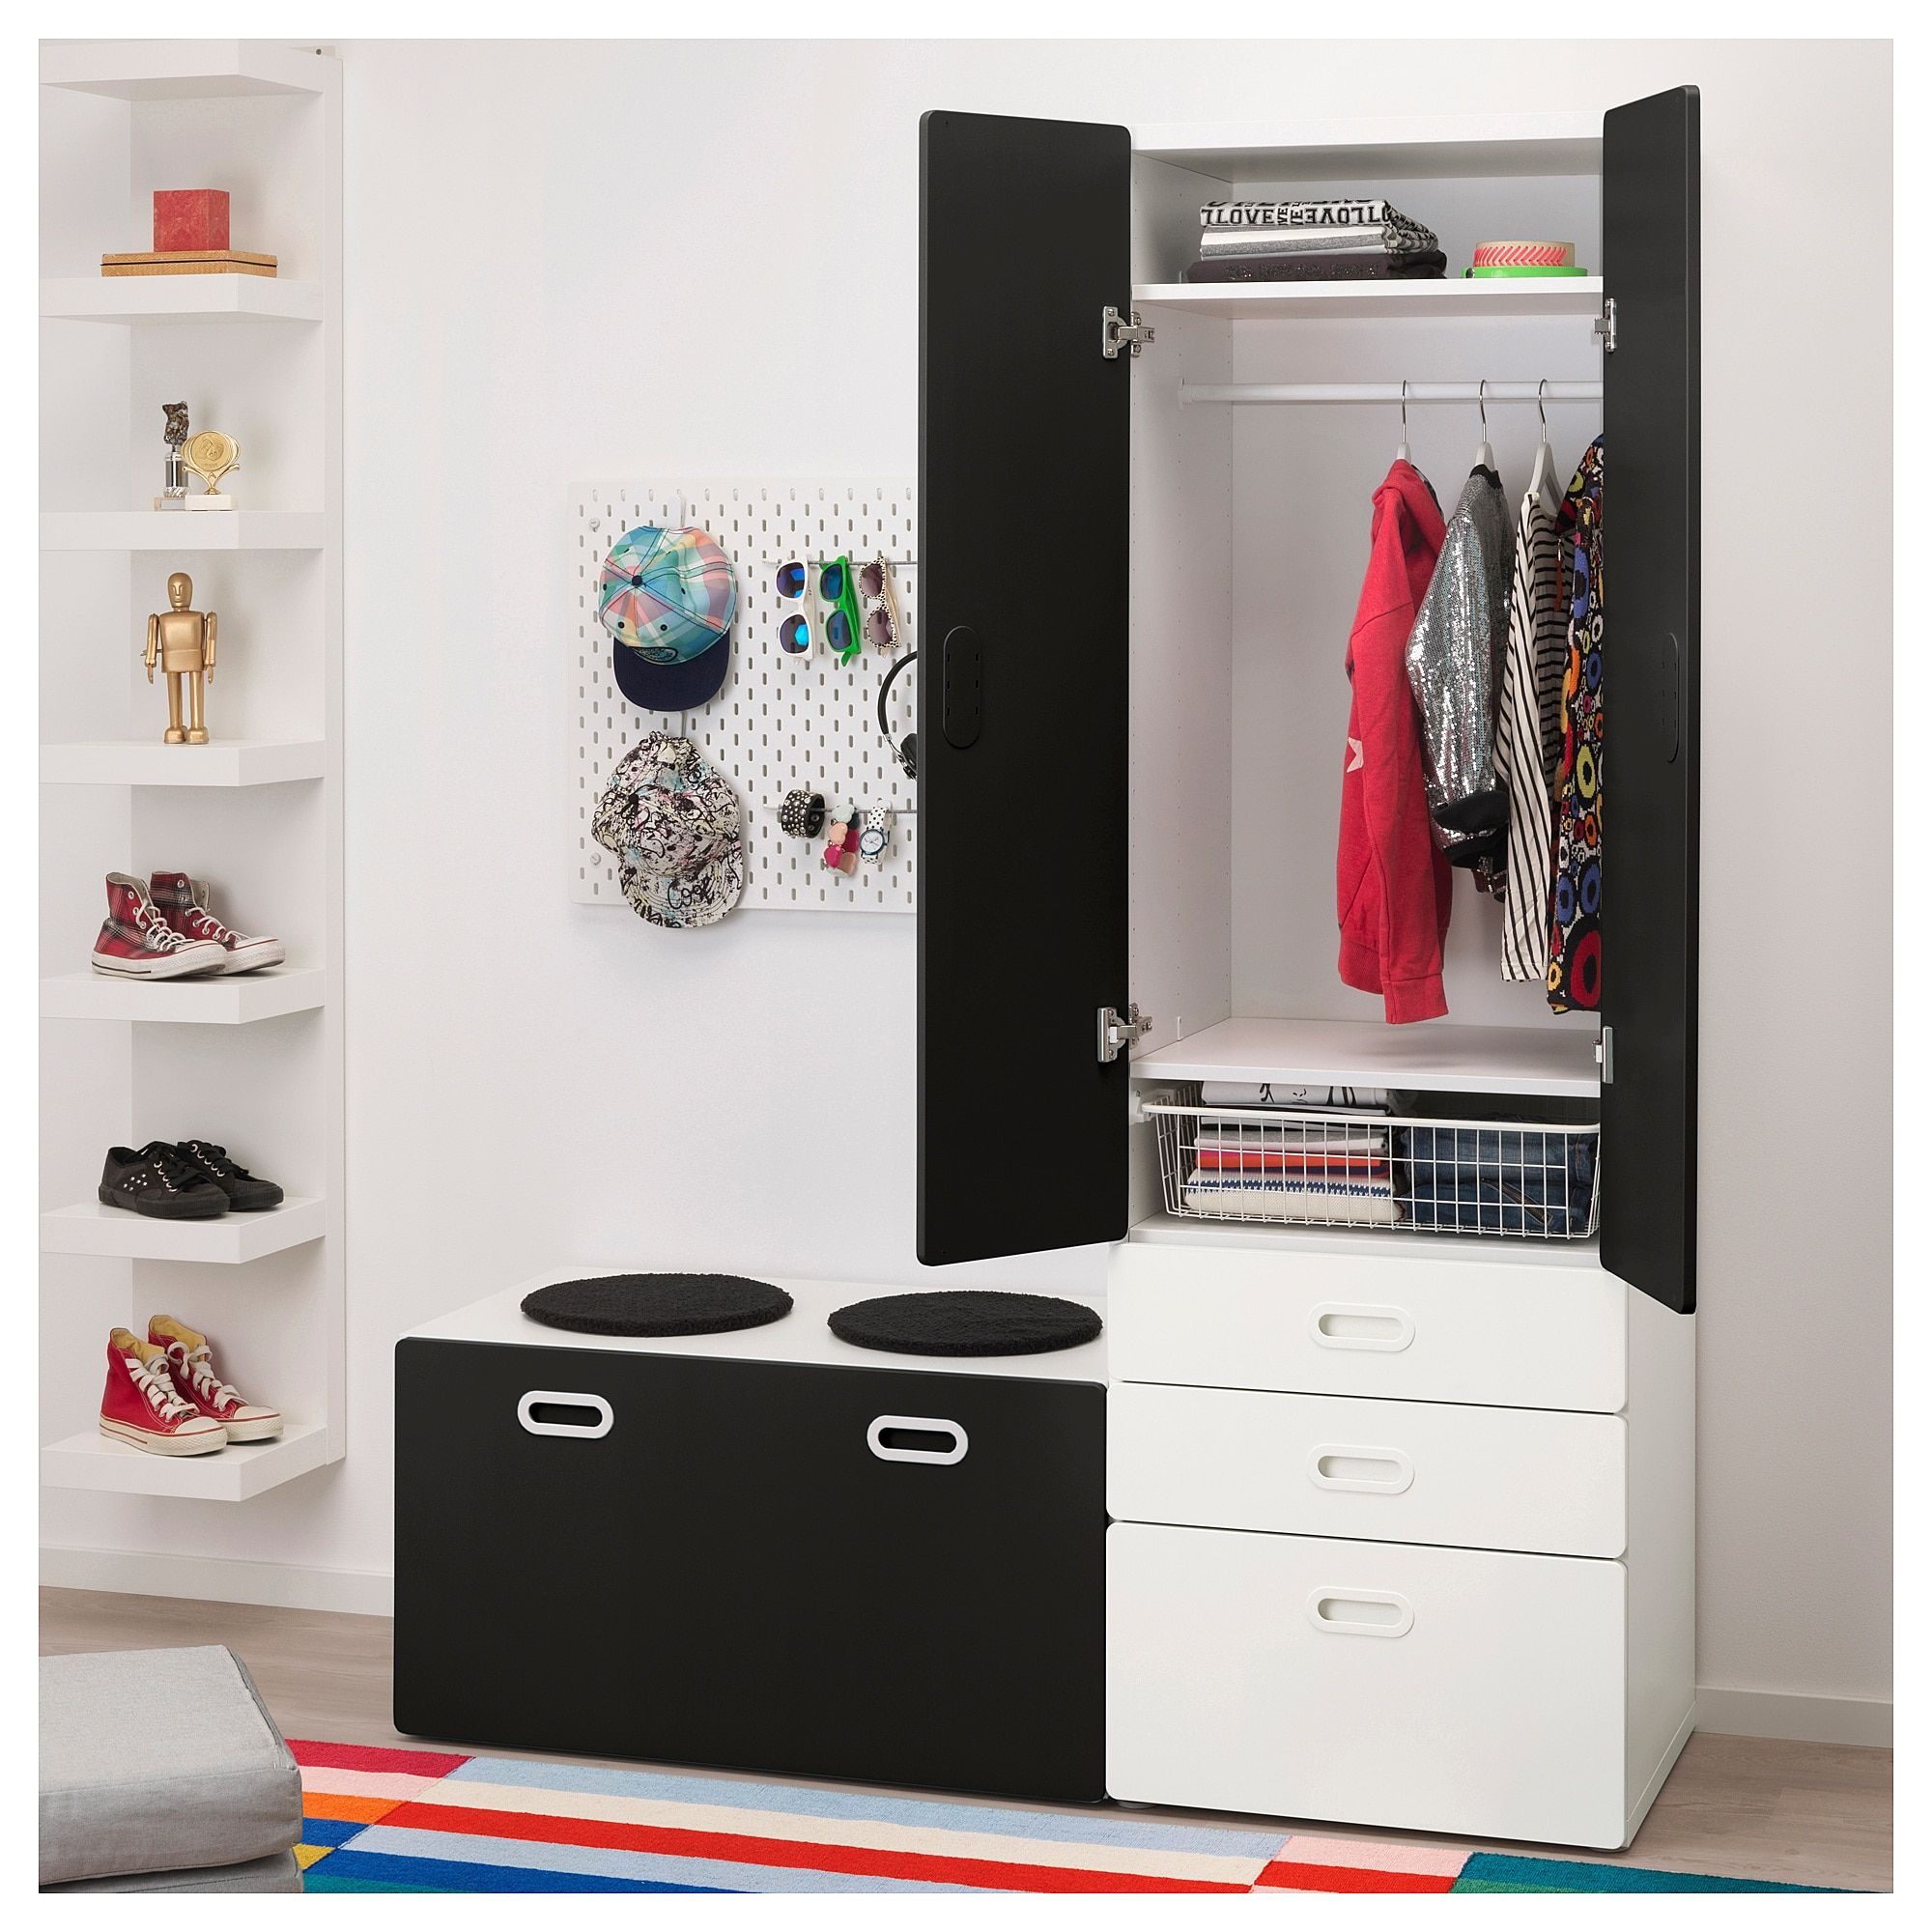 Admirable Ikea Stuva Fritids Wardrobe With Storage Bench White Gmtry Best Dining Table And Chair Ideas Images Gmtryco